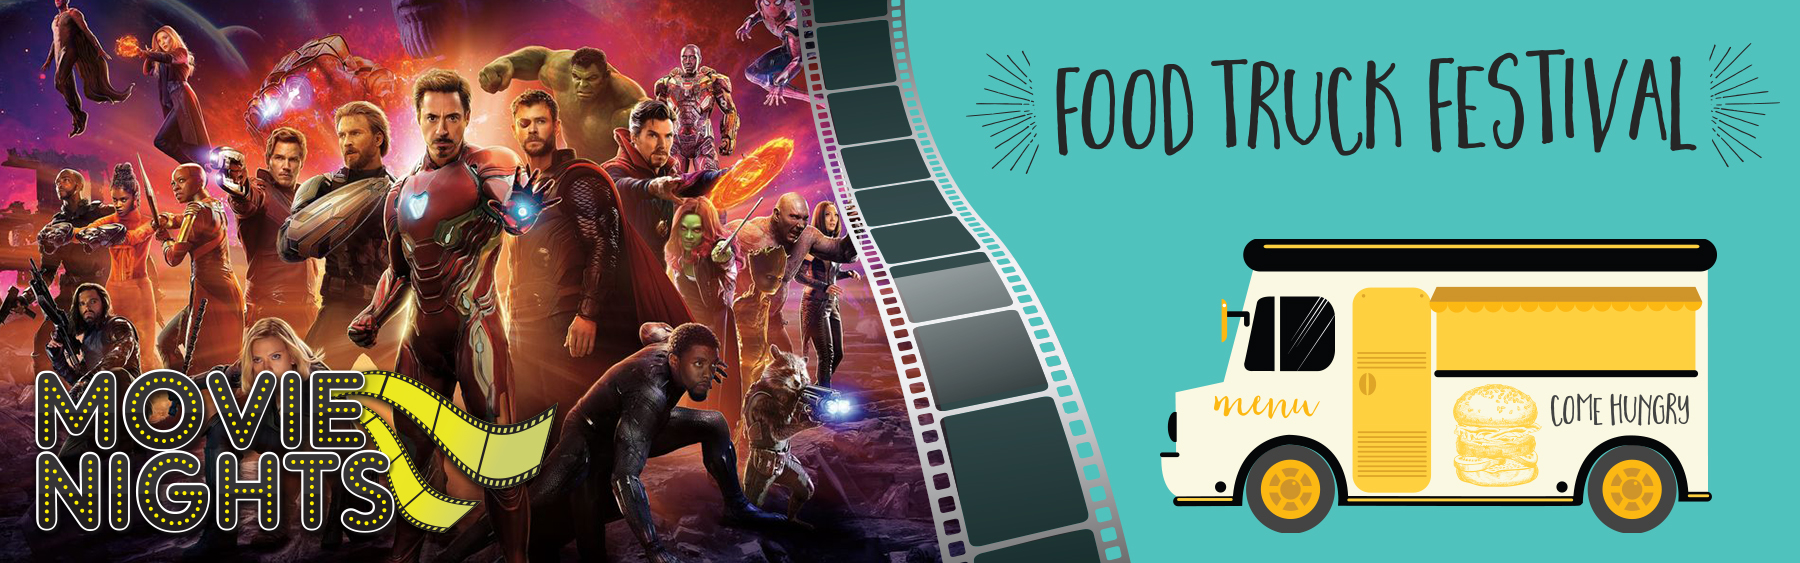 Outdoor Movie Night & Food Truck Festival